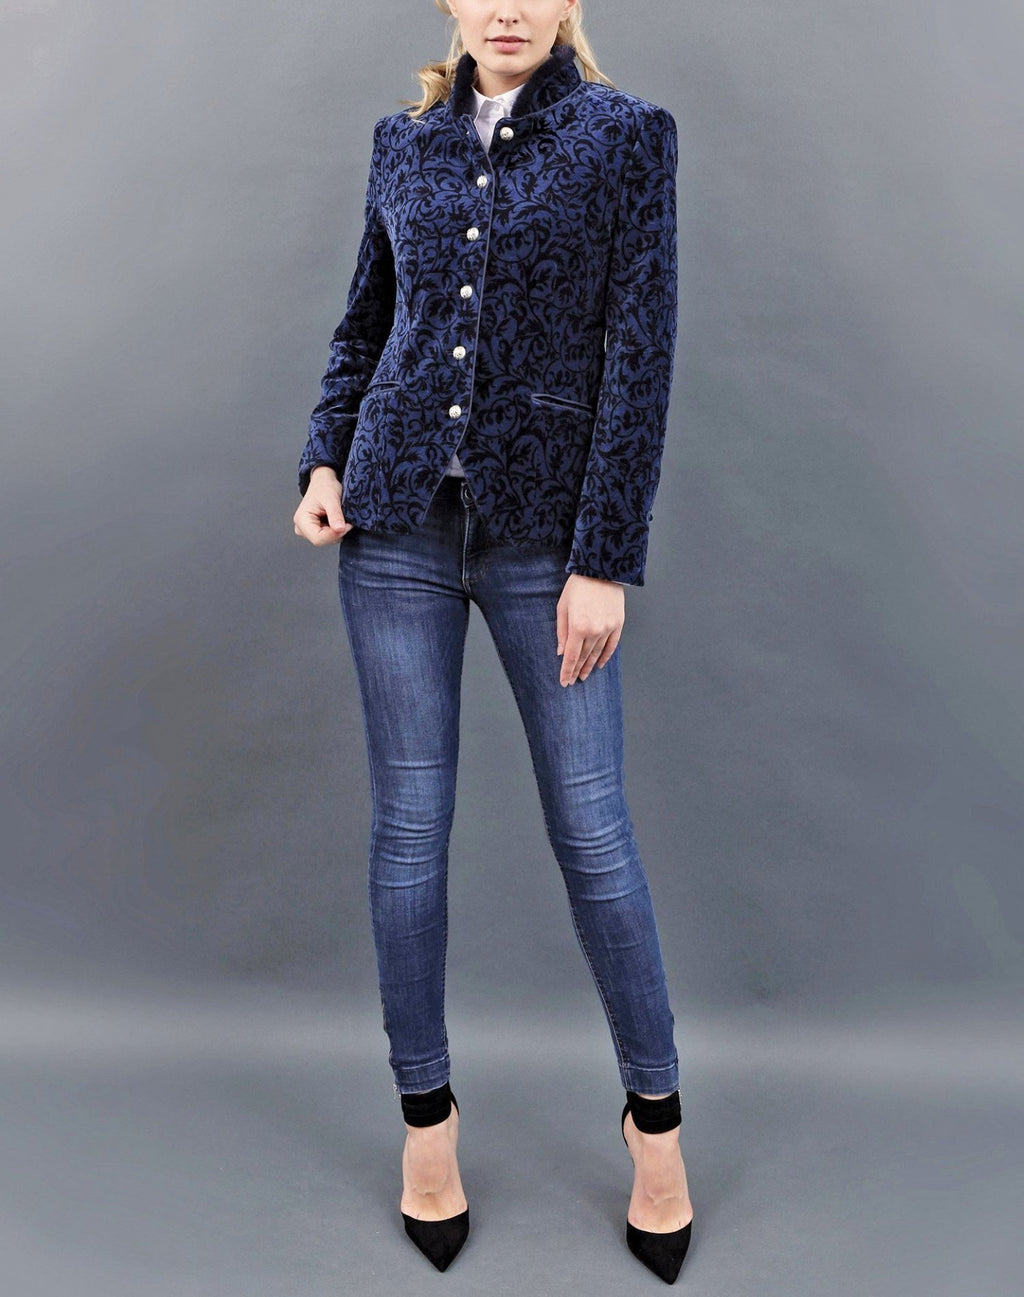 jacket, Jacke, velvet, Samt, short, kurz, midnight blue, navy borders, passament closure, Posamentverschlüsse